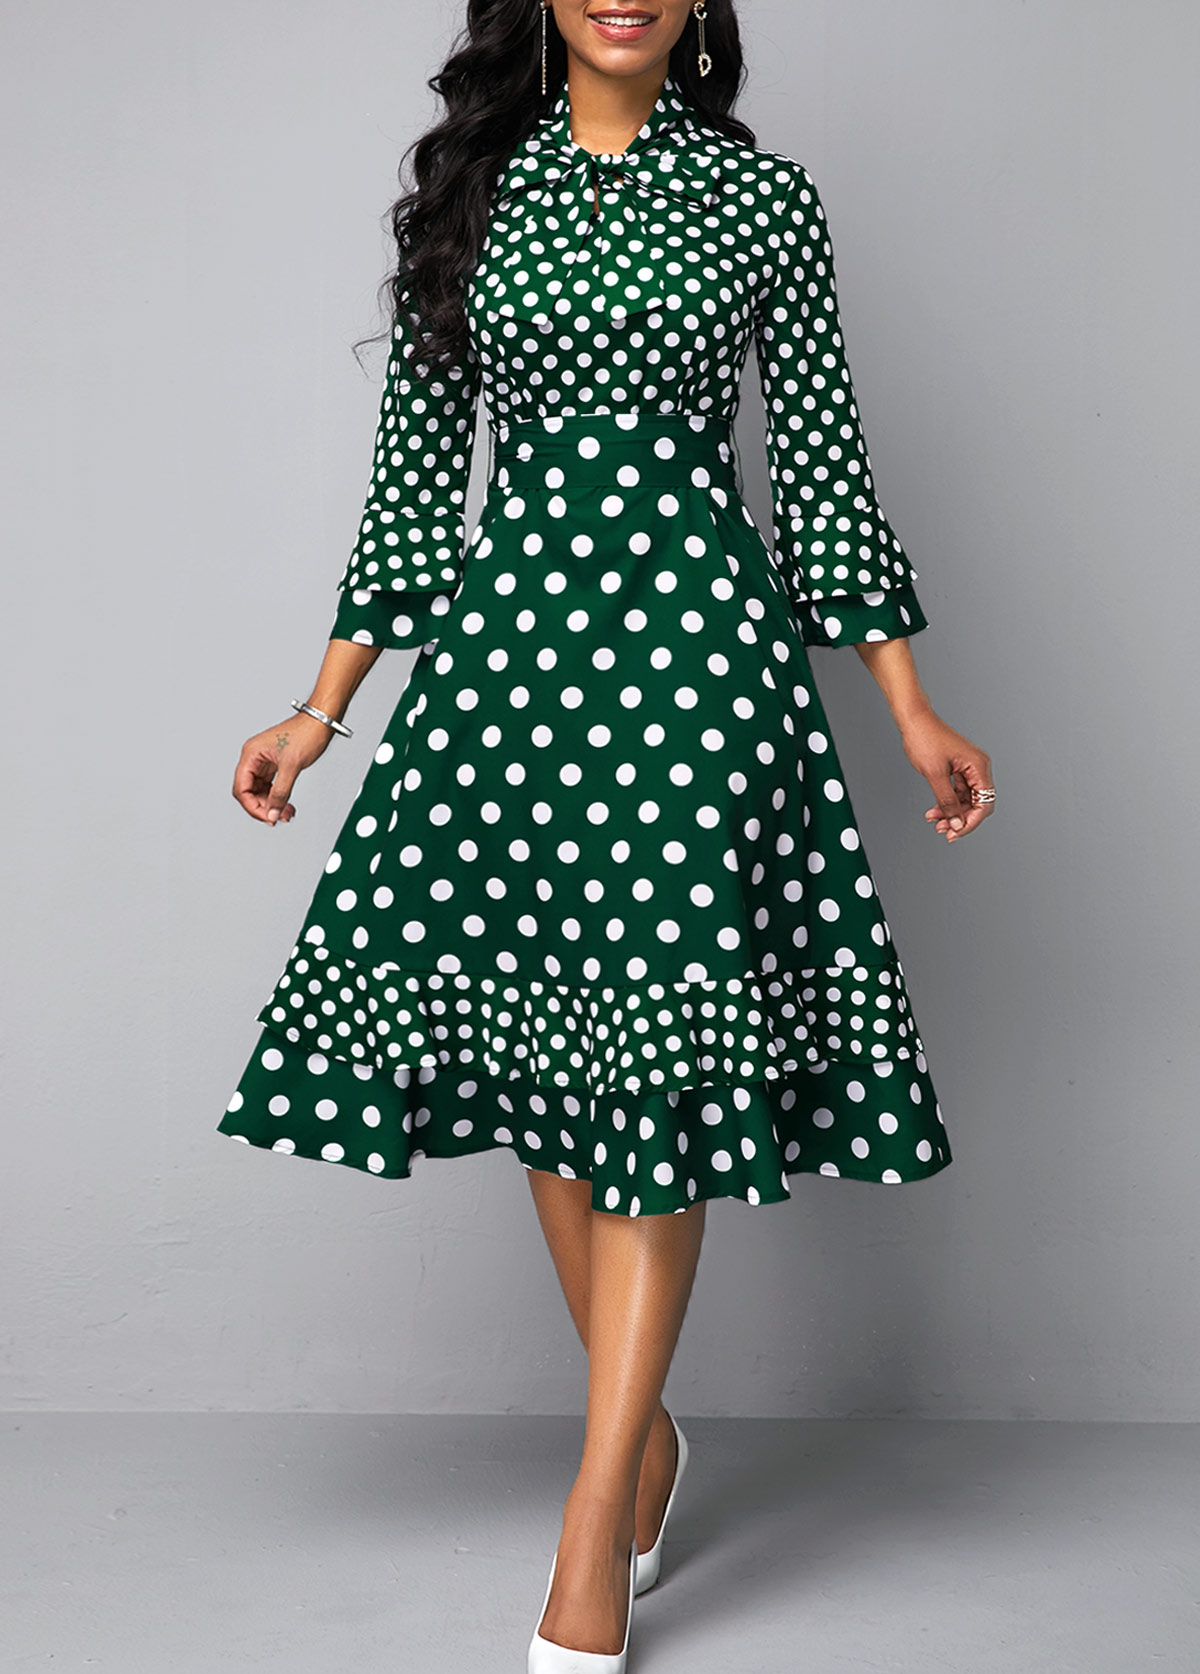 Bowknot Detail Dot Print Layered Bell Sleeve Dress